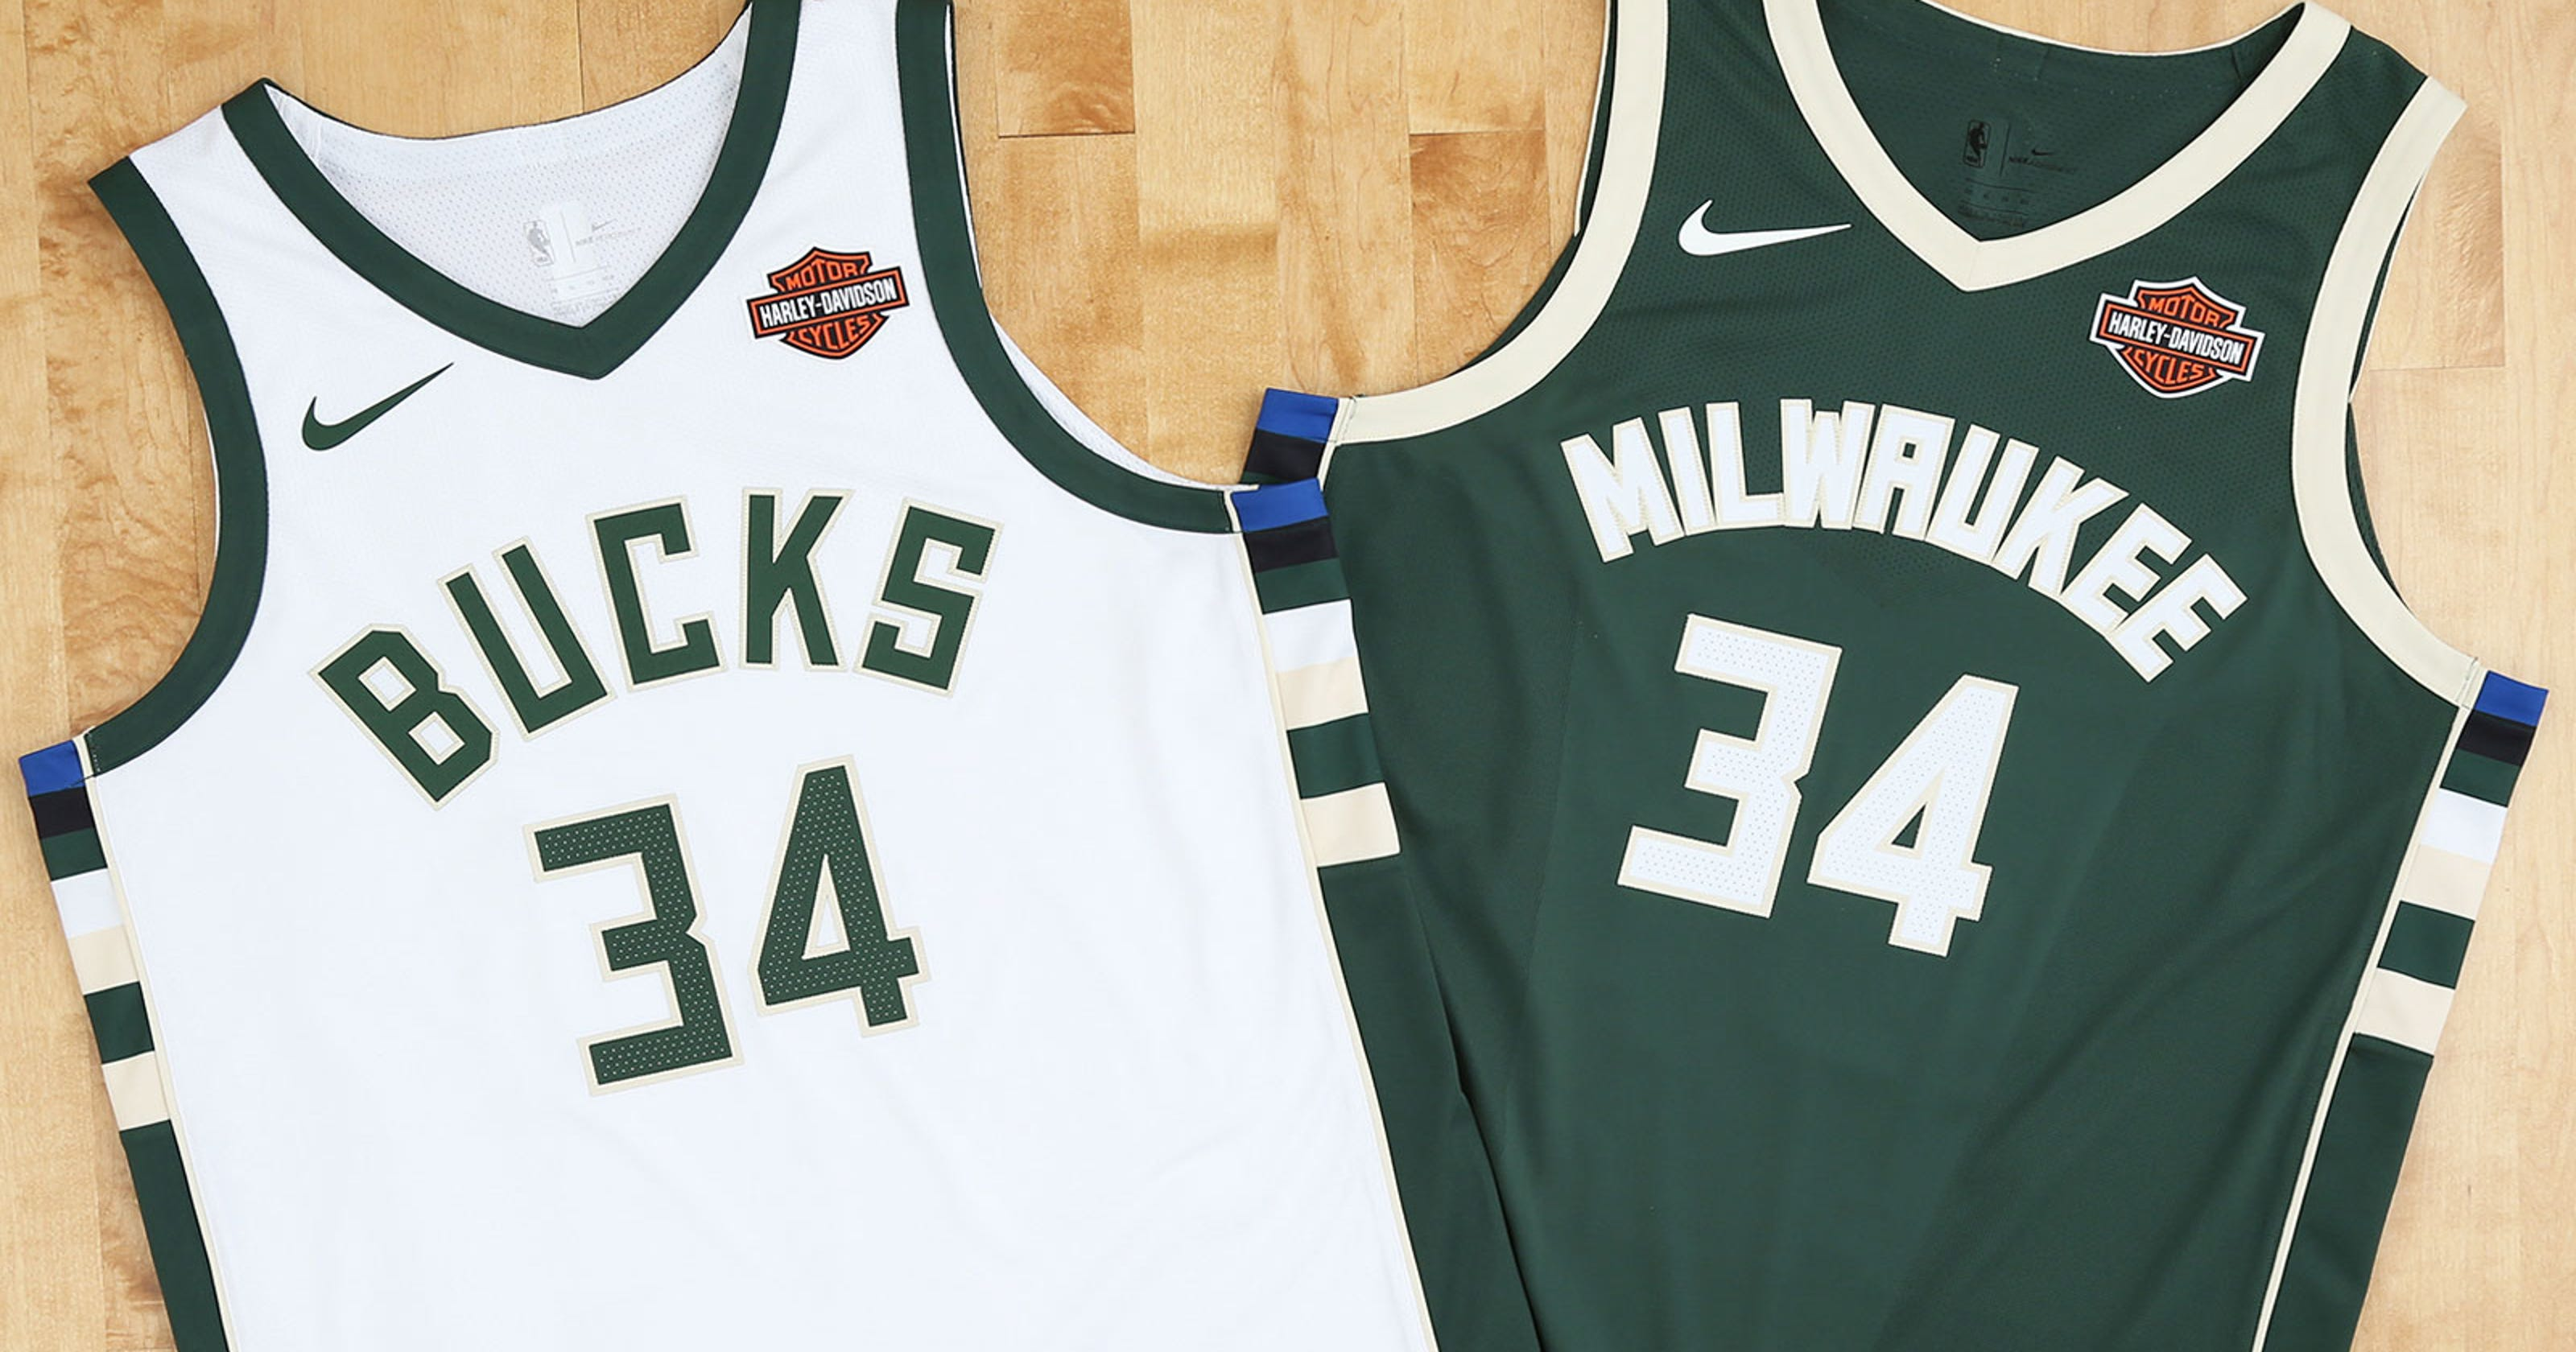 1b51cc5beb7 Milwaukee Bucks game jerseys to feature Harley-Davidson advertising patch  starting in 2017- 18